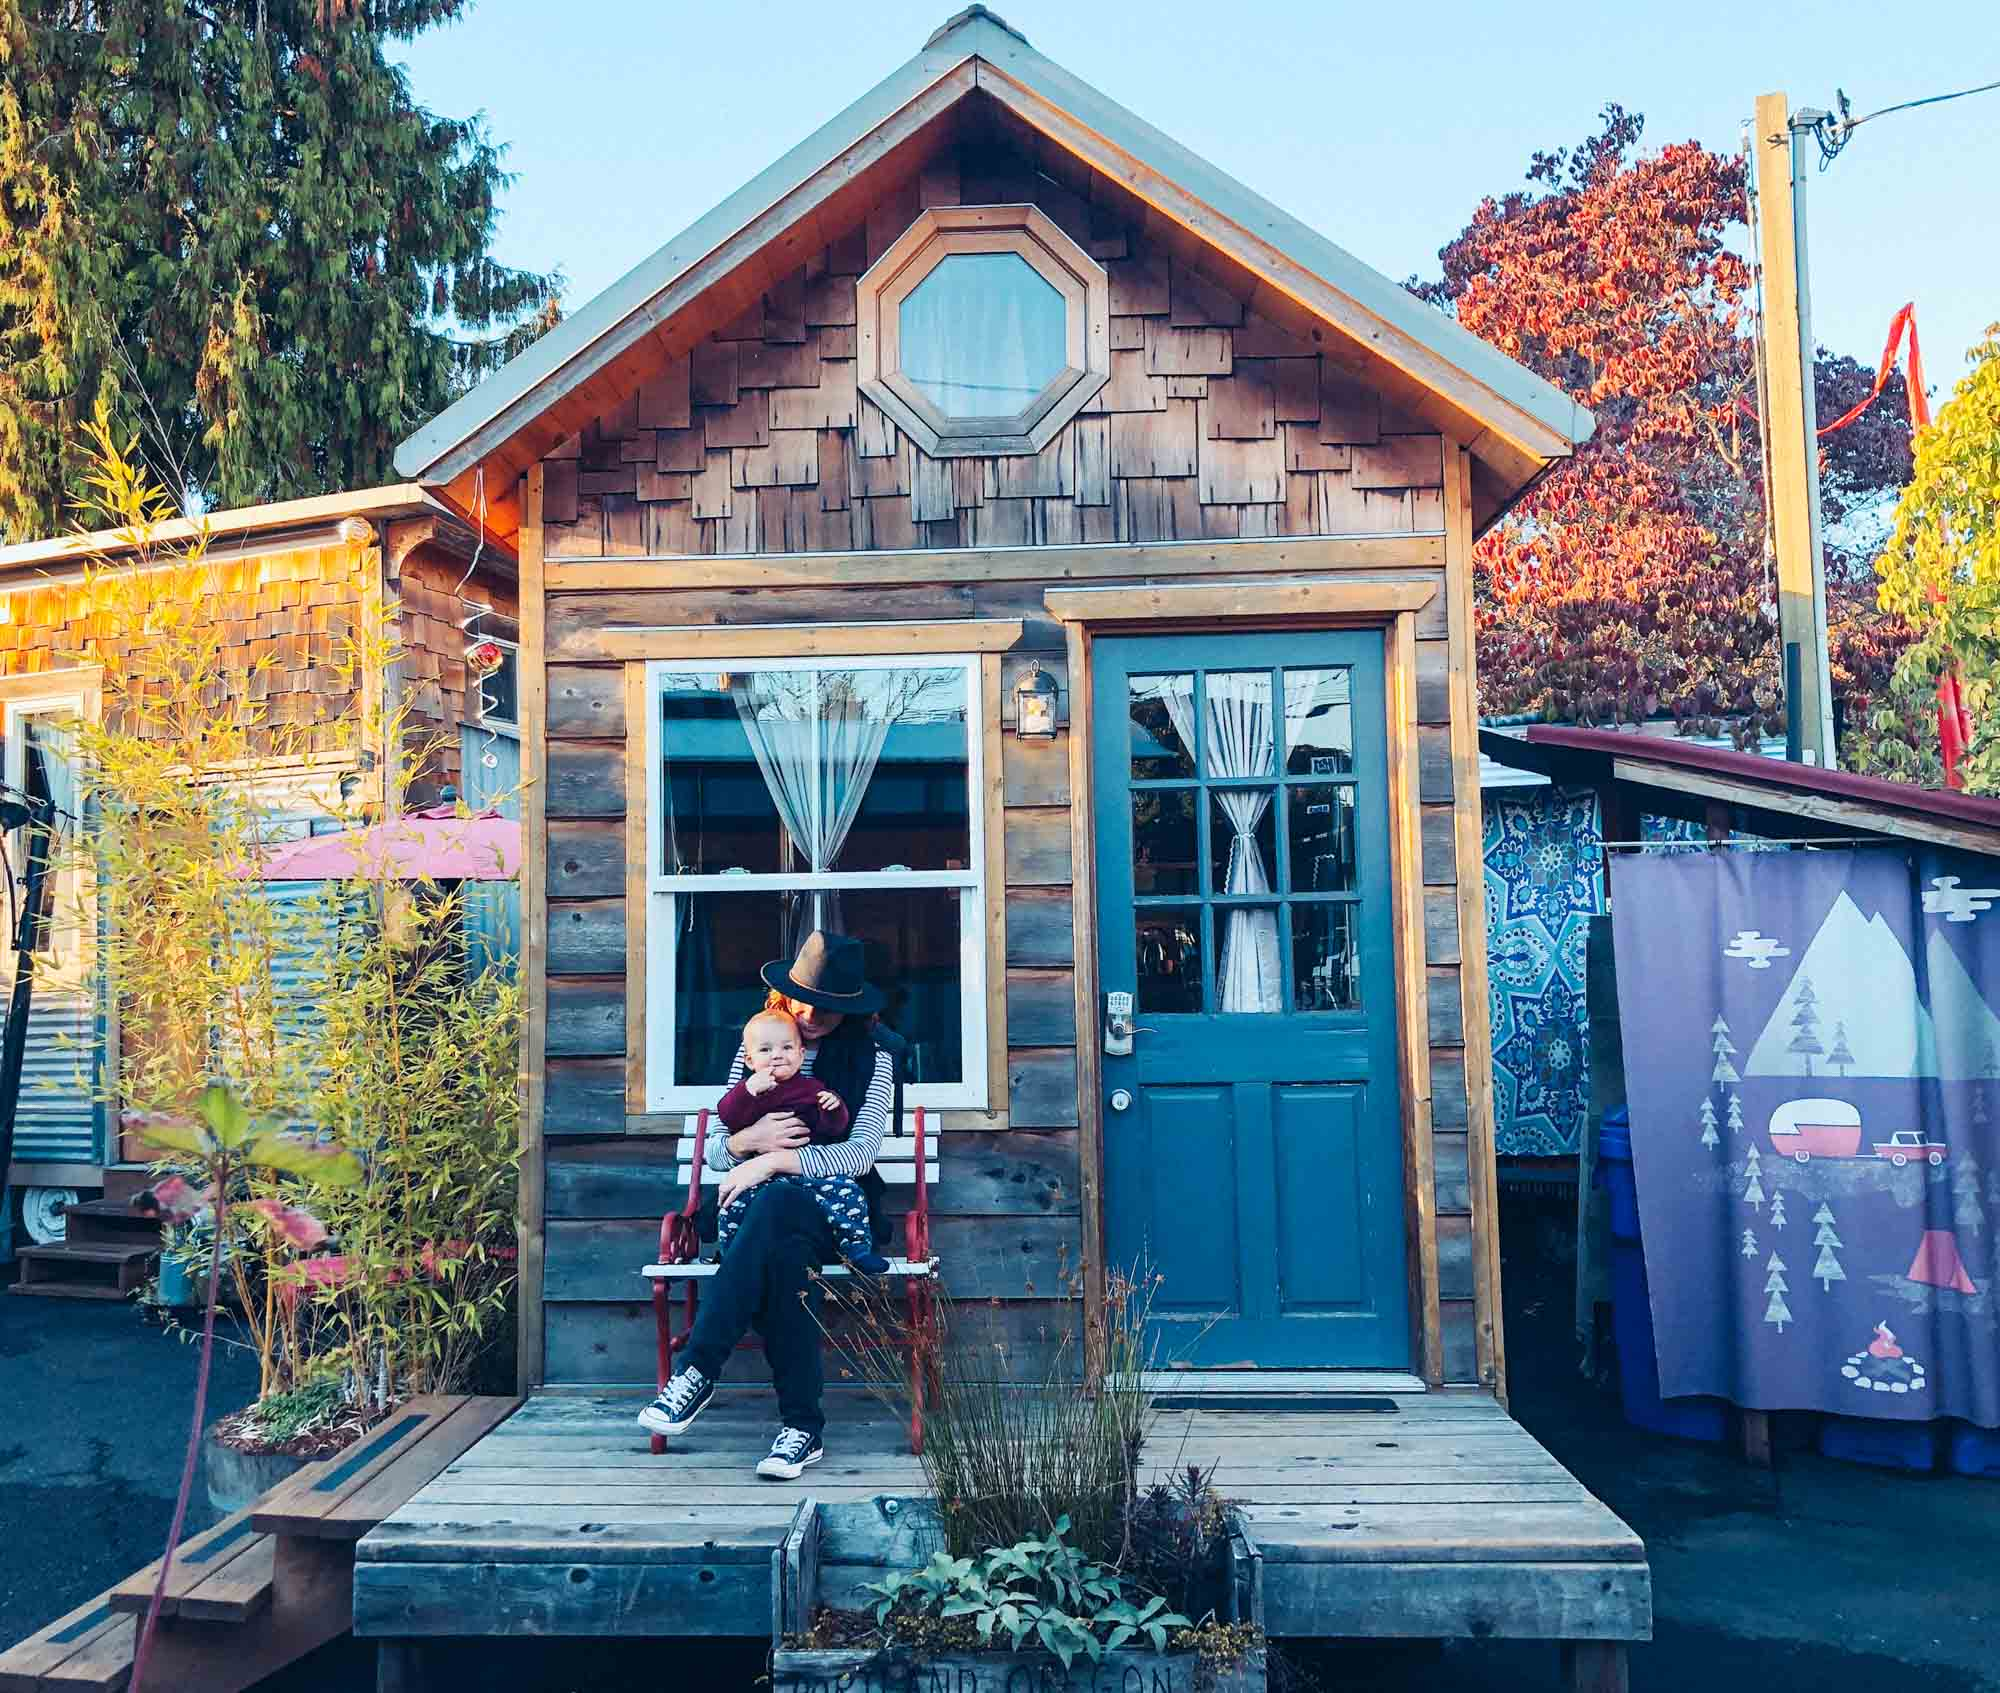 Where to stay in Portland: Caravan, the Tiny House Hotel